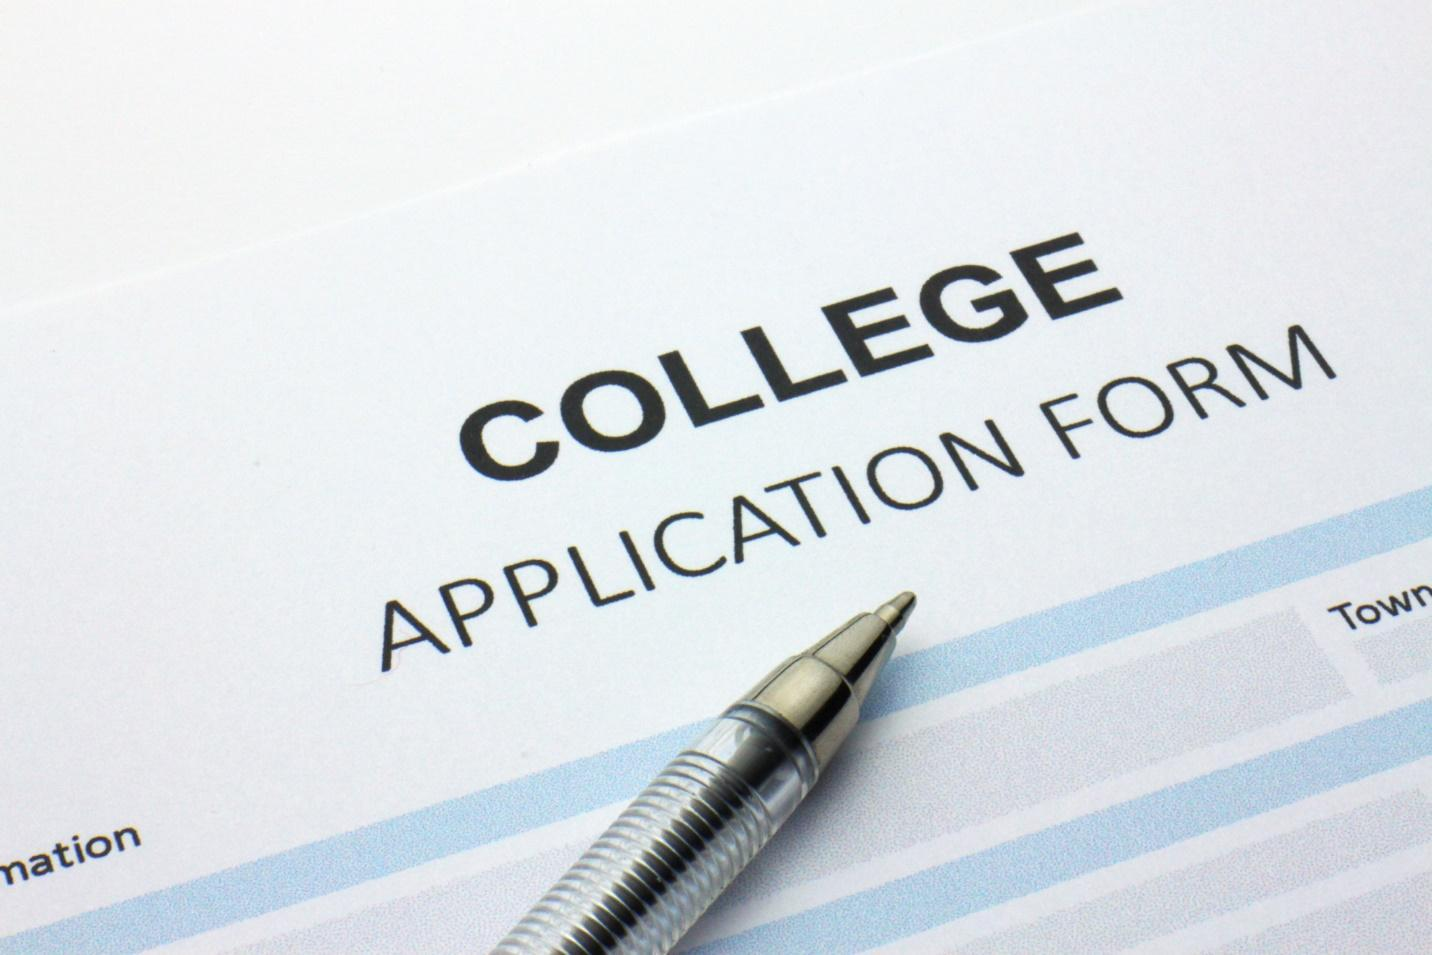 Learn how to start an college application essay